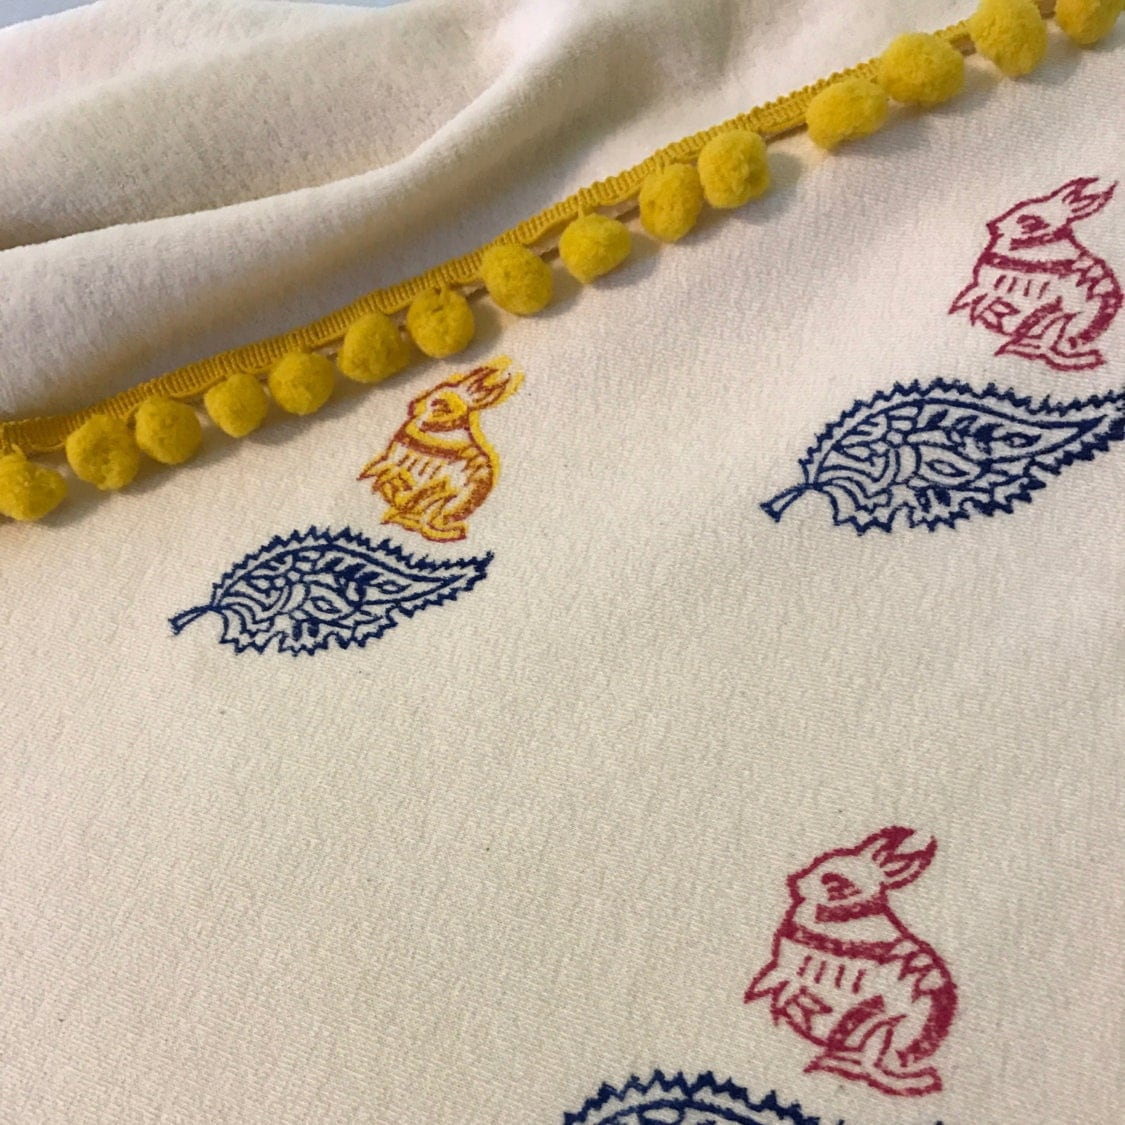 Baby Blanket / Organic Cotton Velour / Sherpa / Bunny Rabbits / Indian Print / Toddler / Girl / Warm / Gift / Swaddle / Nursery Décor / Crib